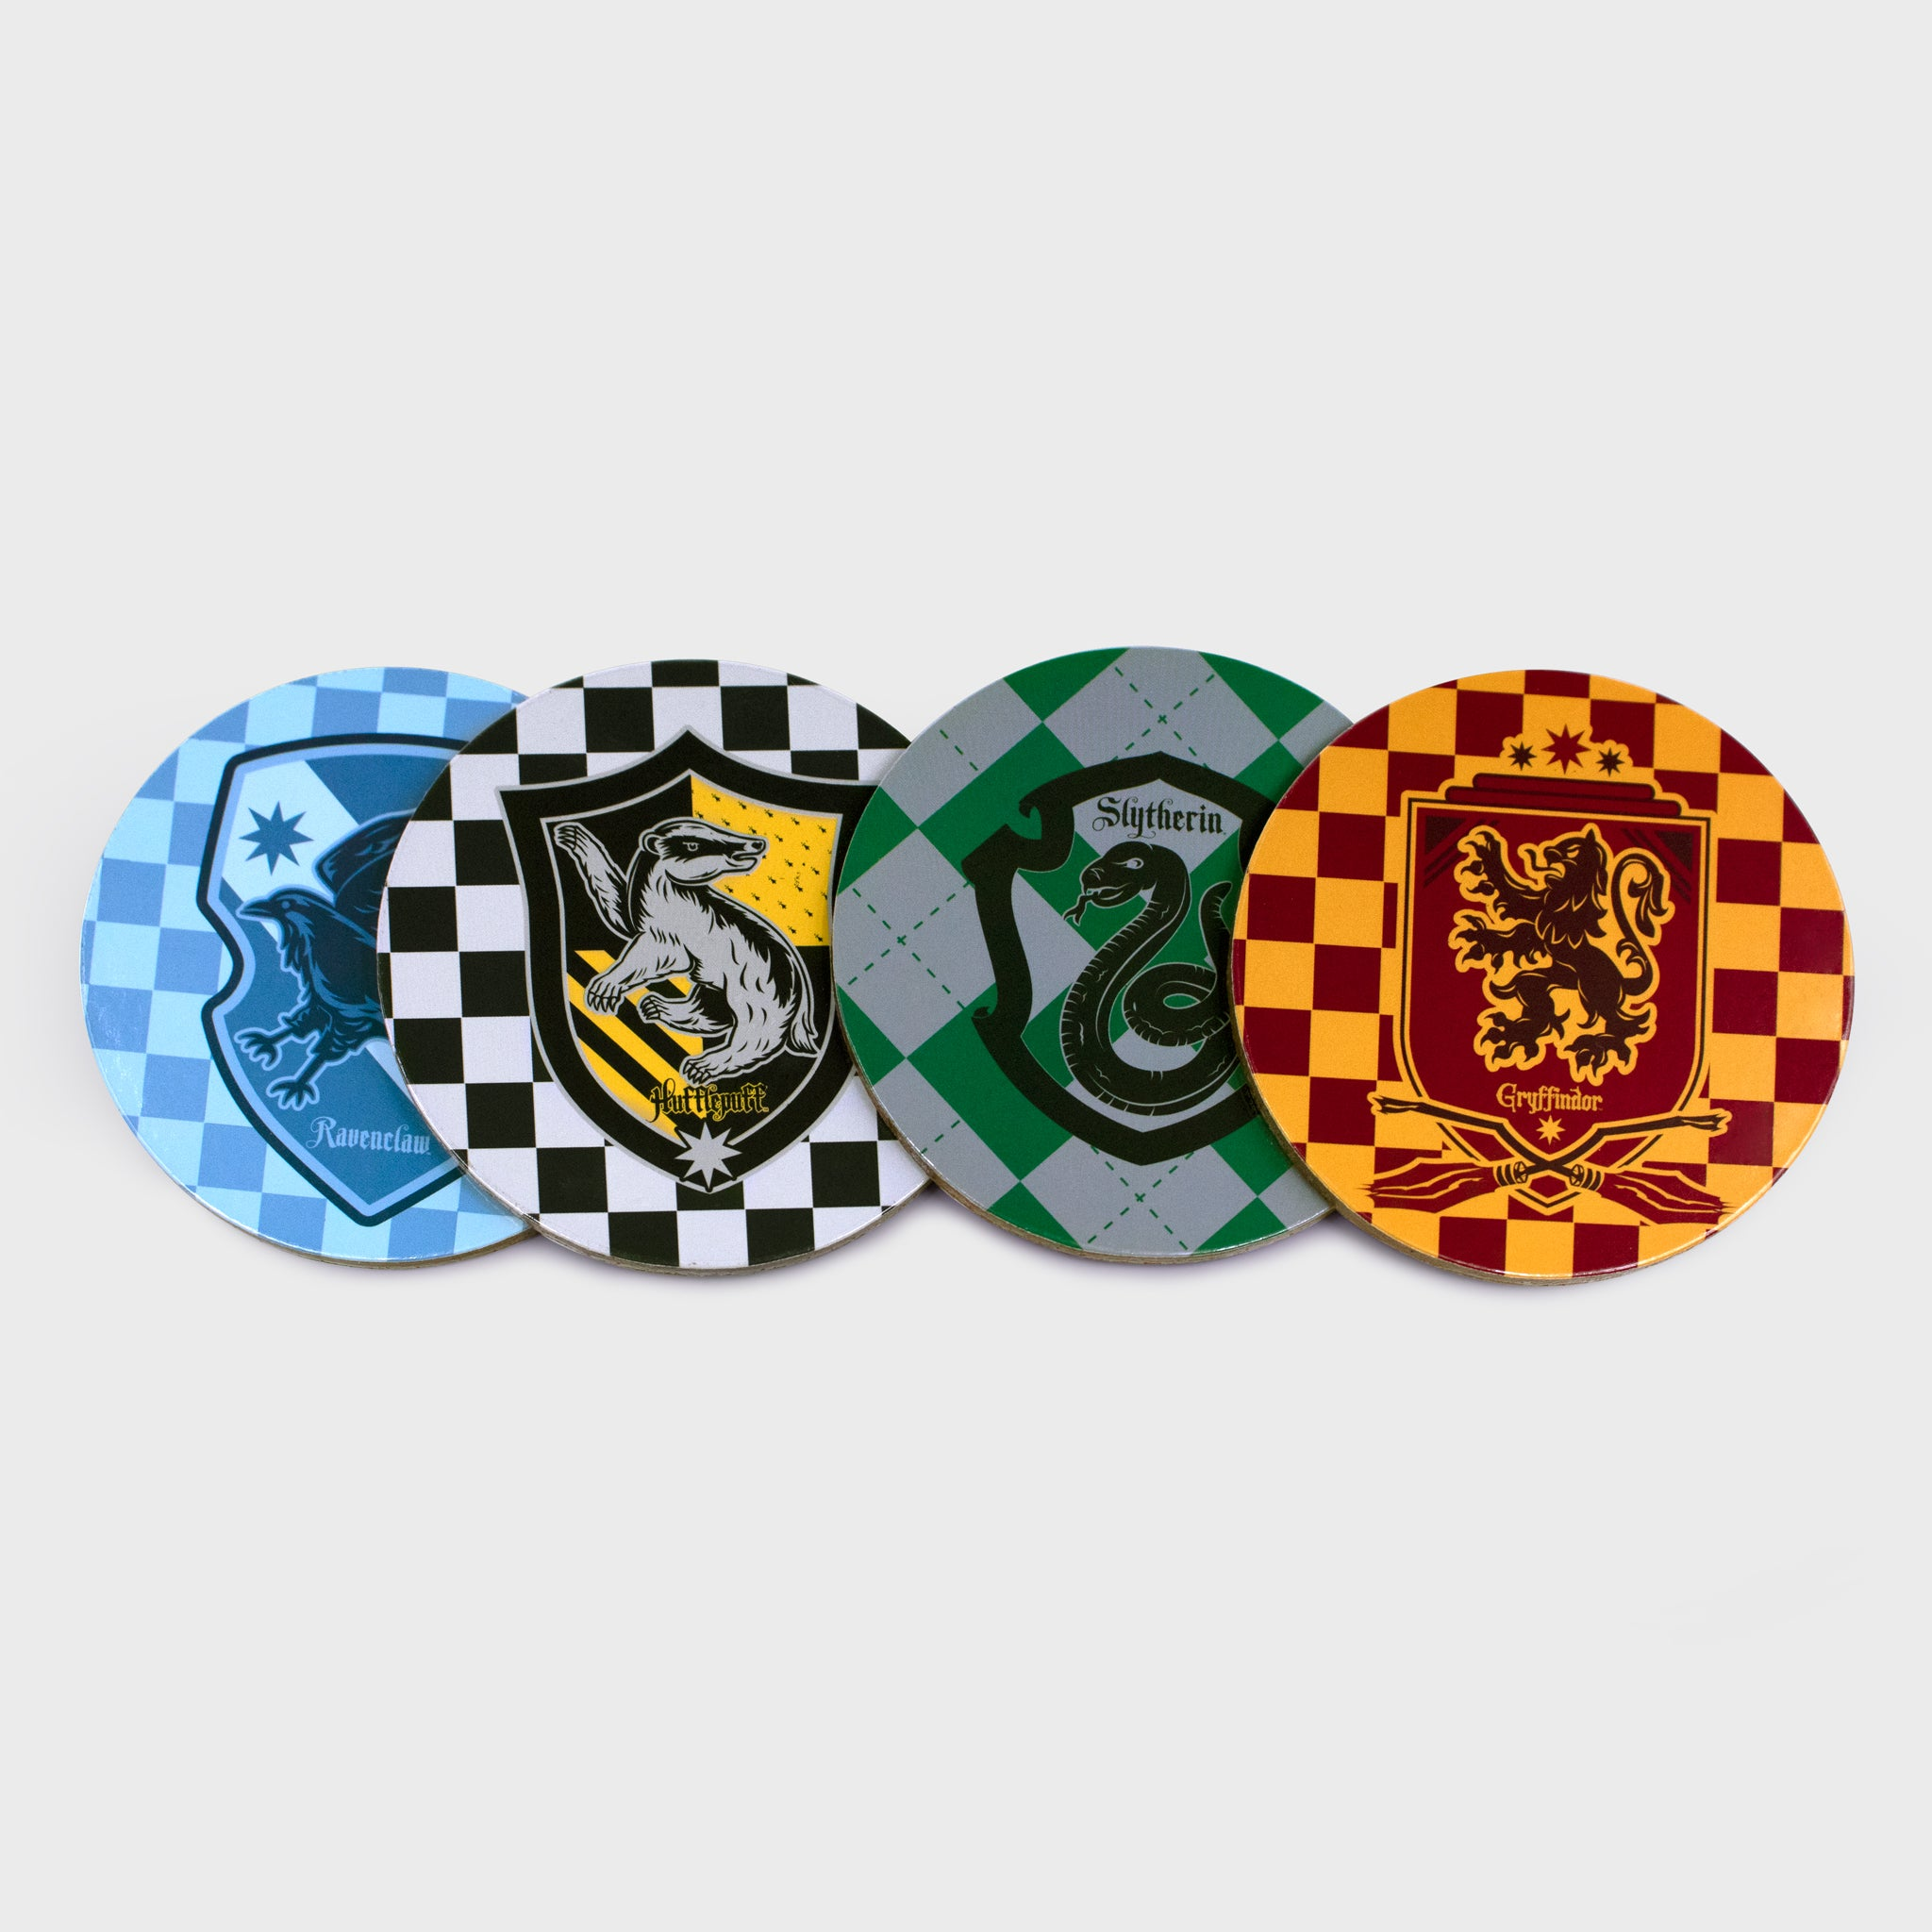 harry potter wizarding world quidditch warner brothers walmart retail box collectibles home good accessories exclusive culturefly coaster coasters set houses gryffindor slytherin hufflepuff ravenclaw